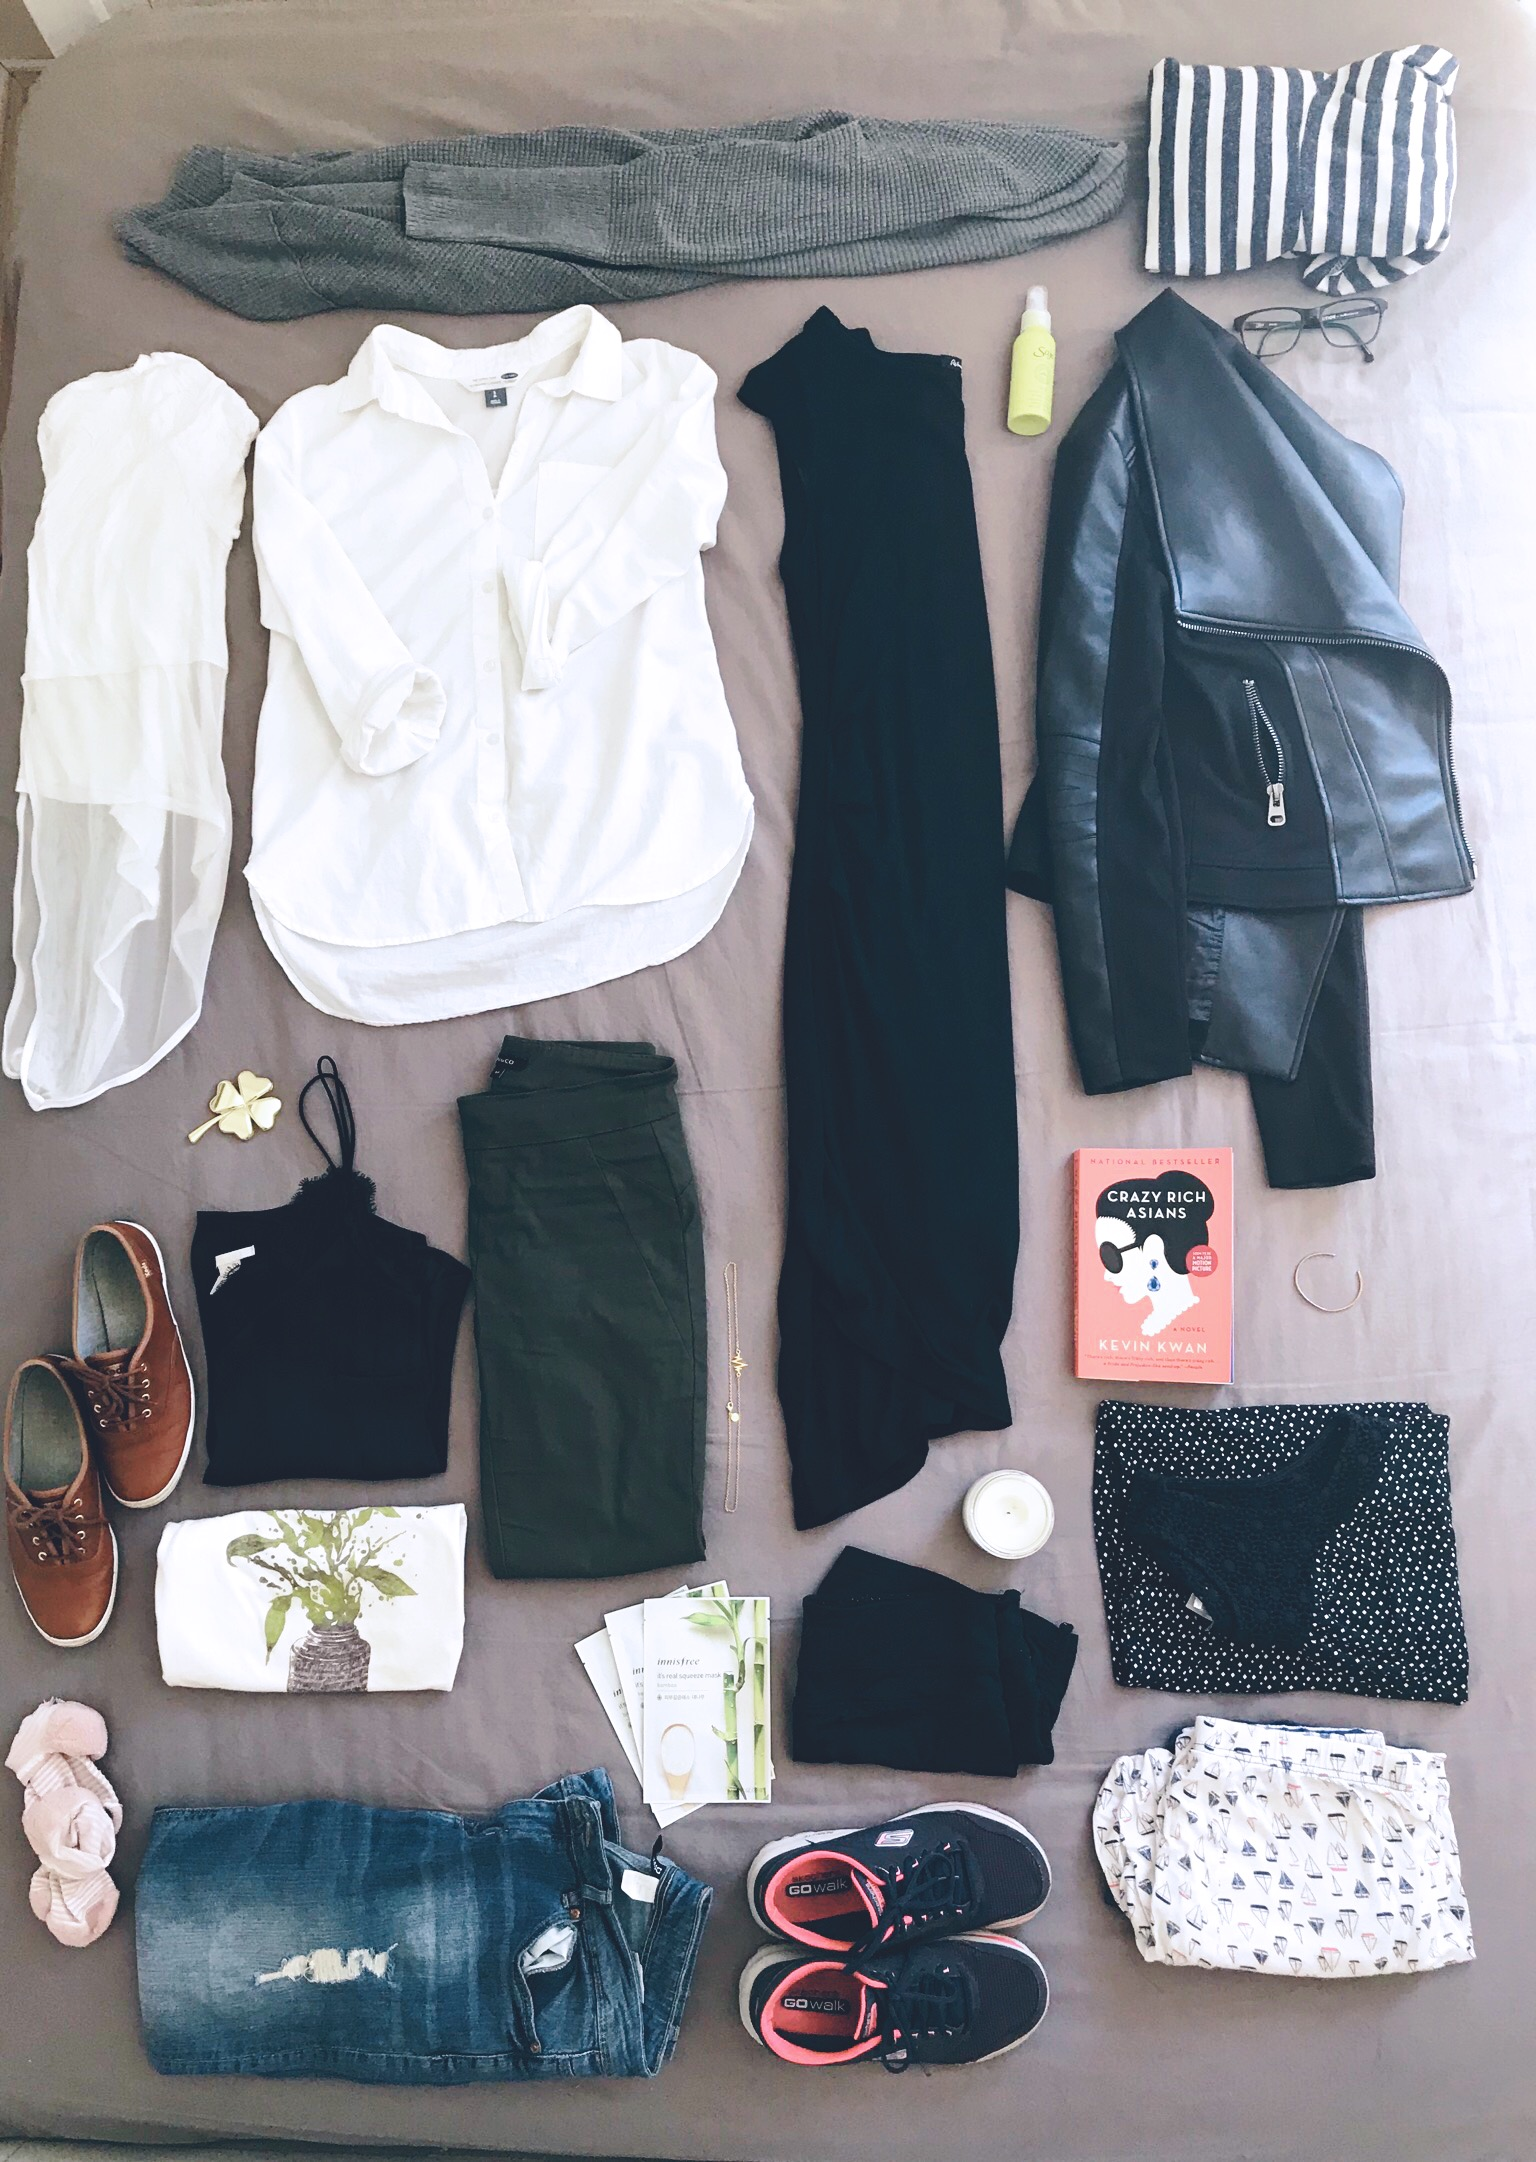 Top Centre - Clockwise:  Grey Sweater wrap  |  Bootlegger,   Striped Hoodie sweater |  Bluenotes, Zap Toner   | Saje,   Black Pleather Jacket |  Suzie Shiers,  Black Dress  |  Reitmens,   Crazy Rich Asians by Kevin Kwan   | Chapters,   Blue tank top  | Second hand on a road trip,  Sail boat pyjamas  | La Vie en Rose,  Candle   | Foxhound,   Black Workout shorts  | Winners,  Sketcher Runners  | Soft Moc,  Light Ripped Jeans  | H&M,  Bamboo Sheet Masks   | Innisfree ,   Pink socks  | Winners (Lemon) ,  Graphic T |  Threadless,  Brown Leather Keds |  Little Burgundy,  Black Camisole   | H&M,   Four Leaf Clover Knic Knack  | Chapters ,Green Pants   | RW&Co,   Heart Beat necklace | a gift from a bestie , White Linen Shirt   | Old Navy,   White Yoga top  | Local Yoga Store